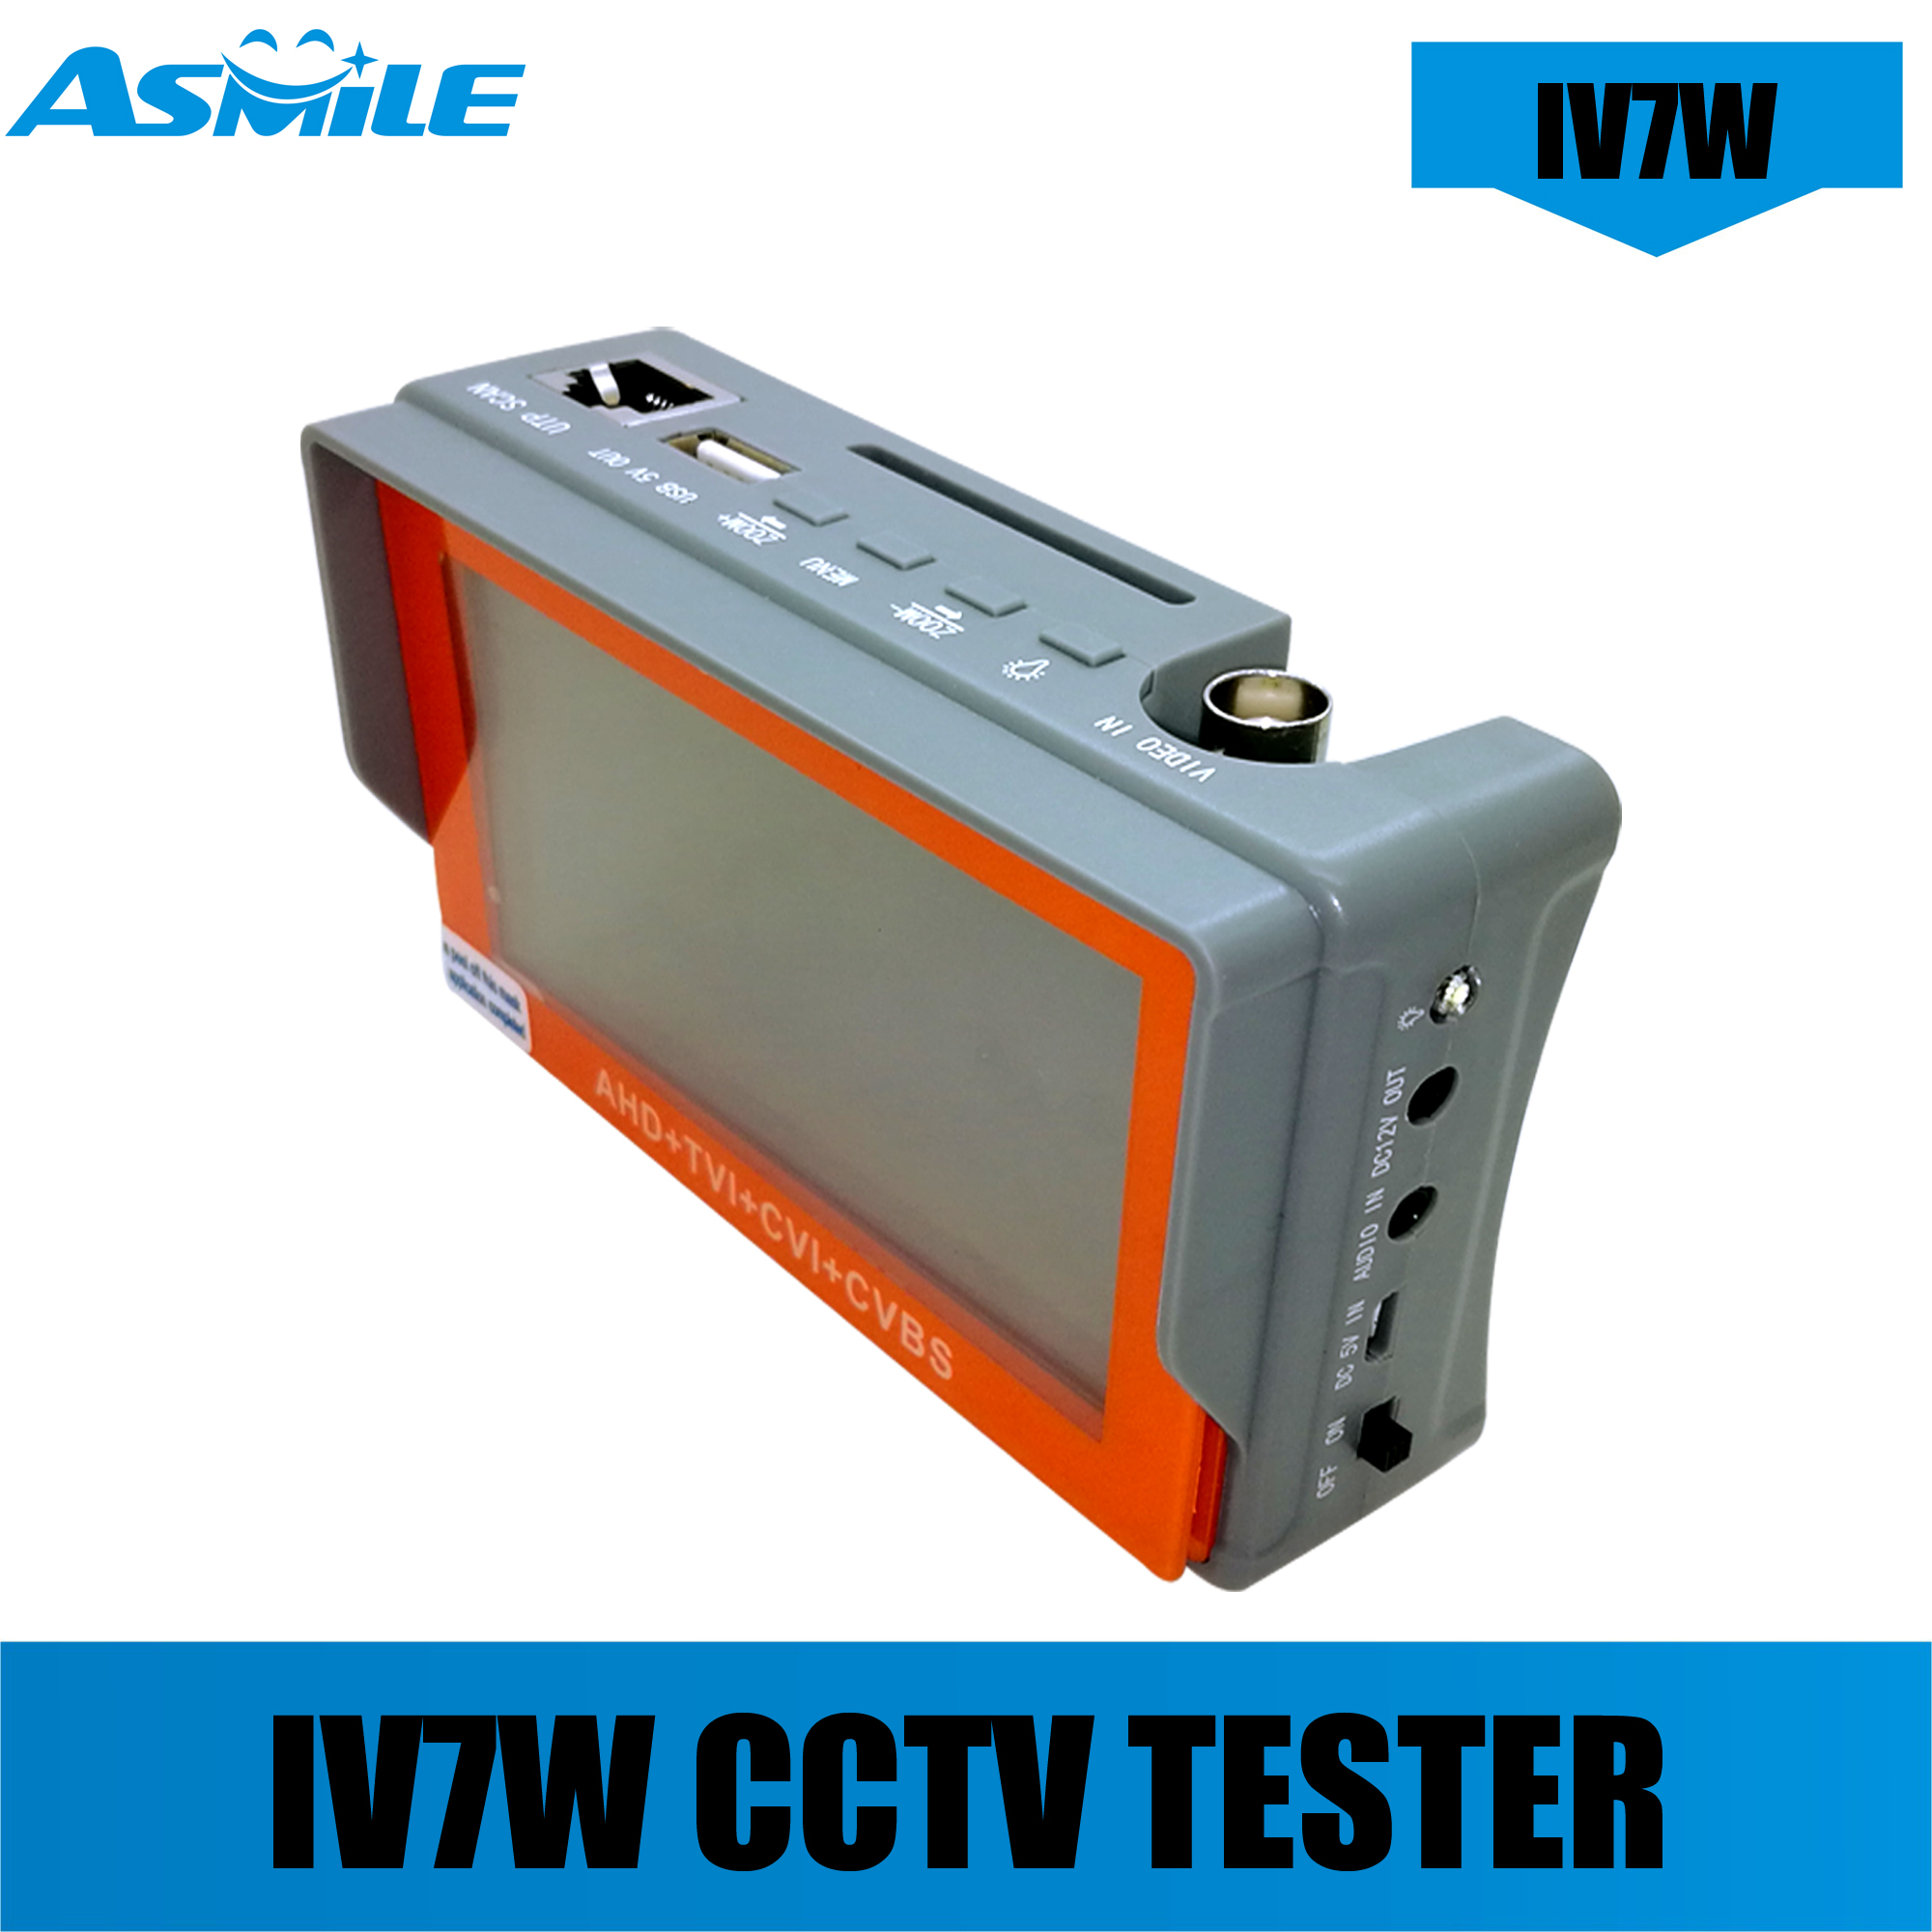 IV7W 4 In 1 Tester Pro 5MP AHD CVI TVI CVBS CCTV Security Tester Monitor With 4.3inch Screen 5V2A 12v1A